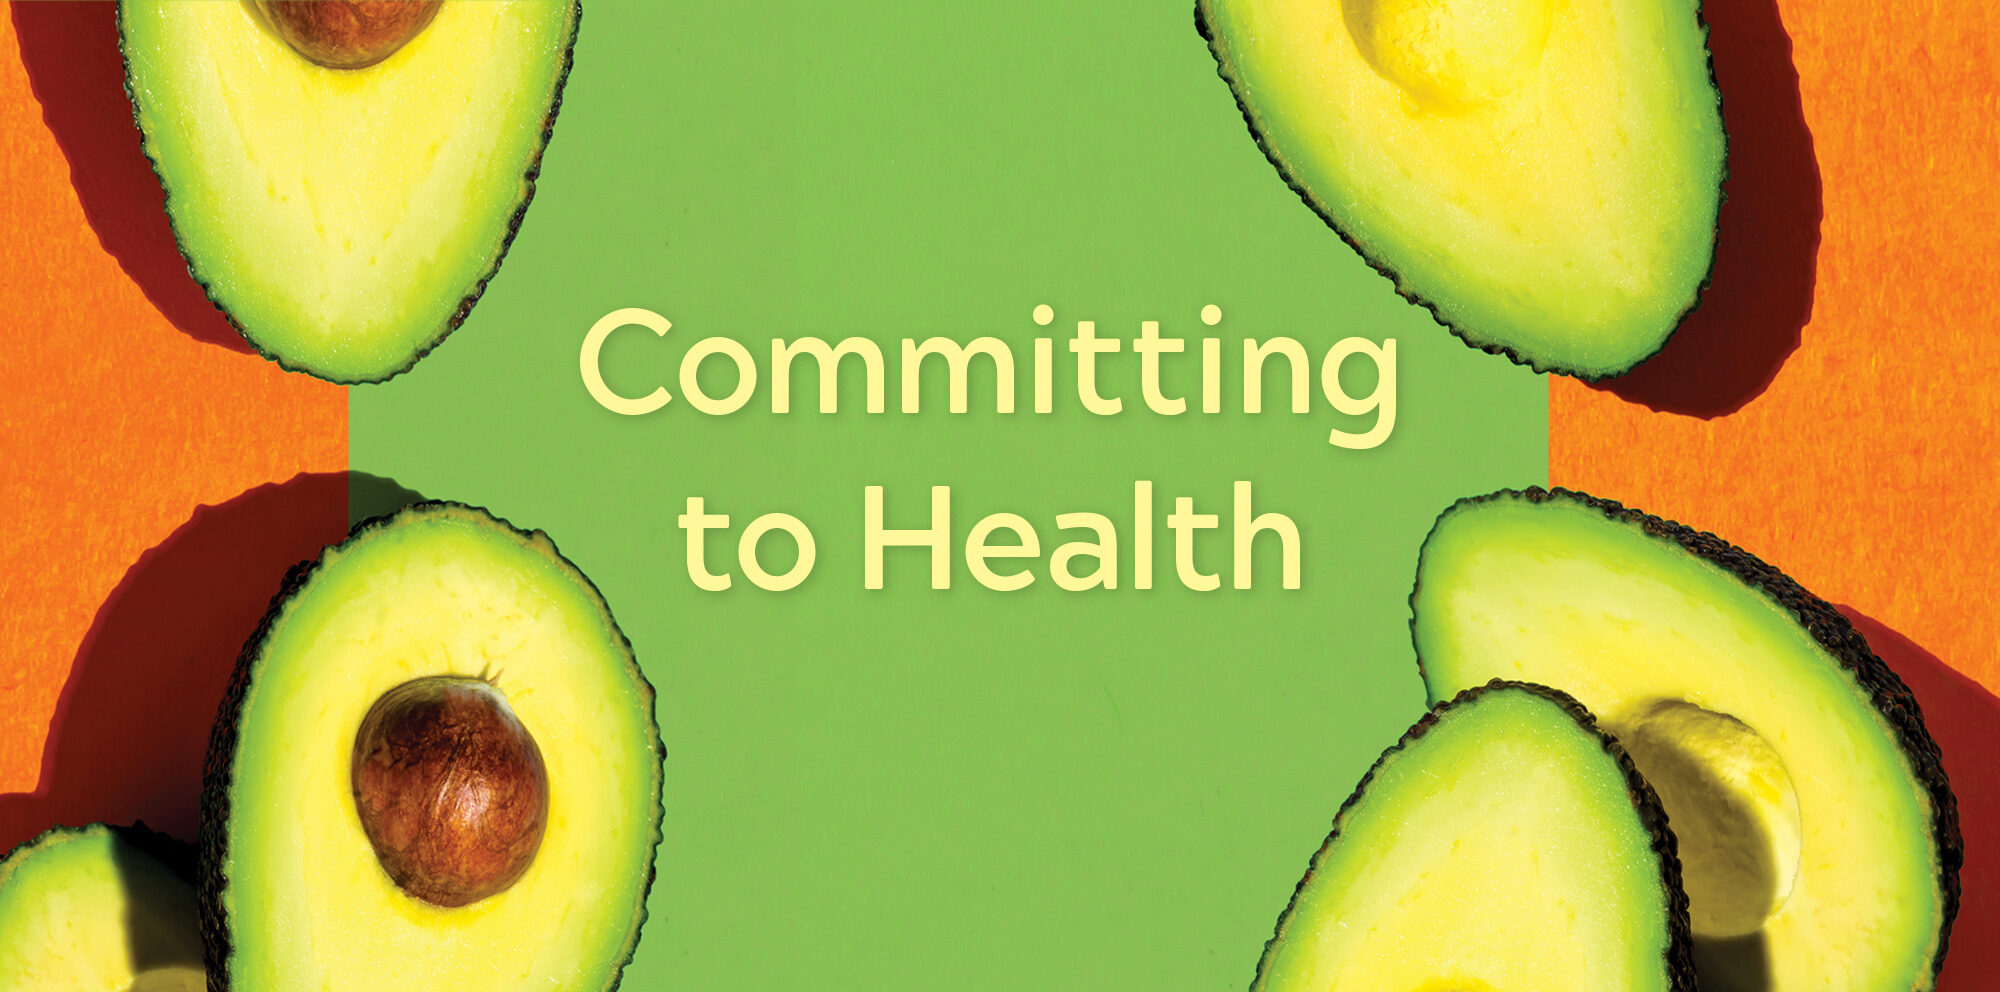 Committing to health with image of avocados